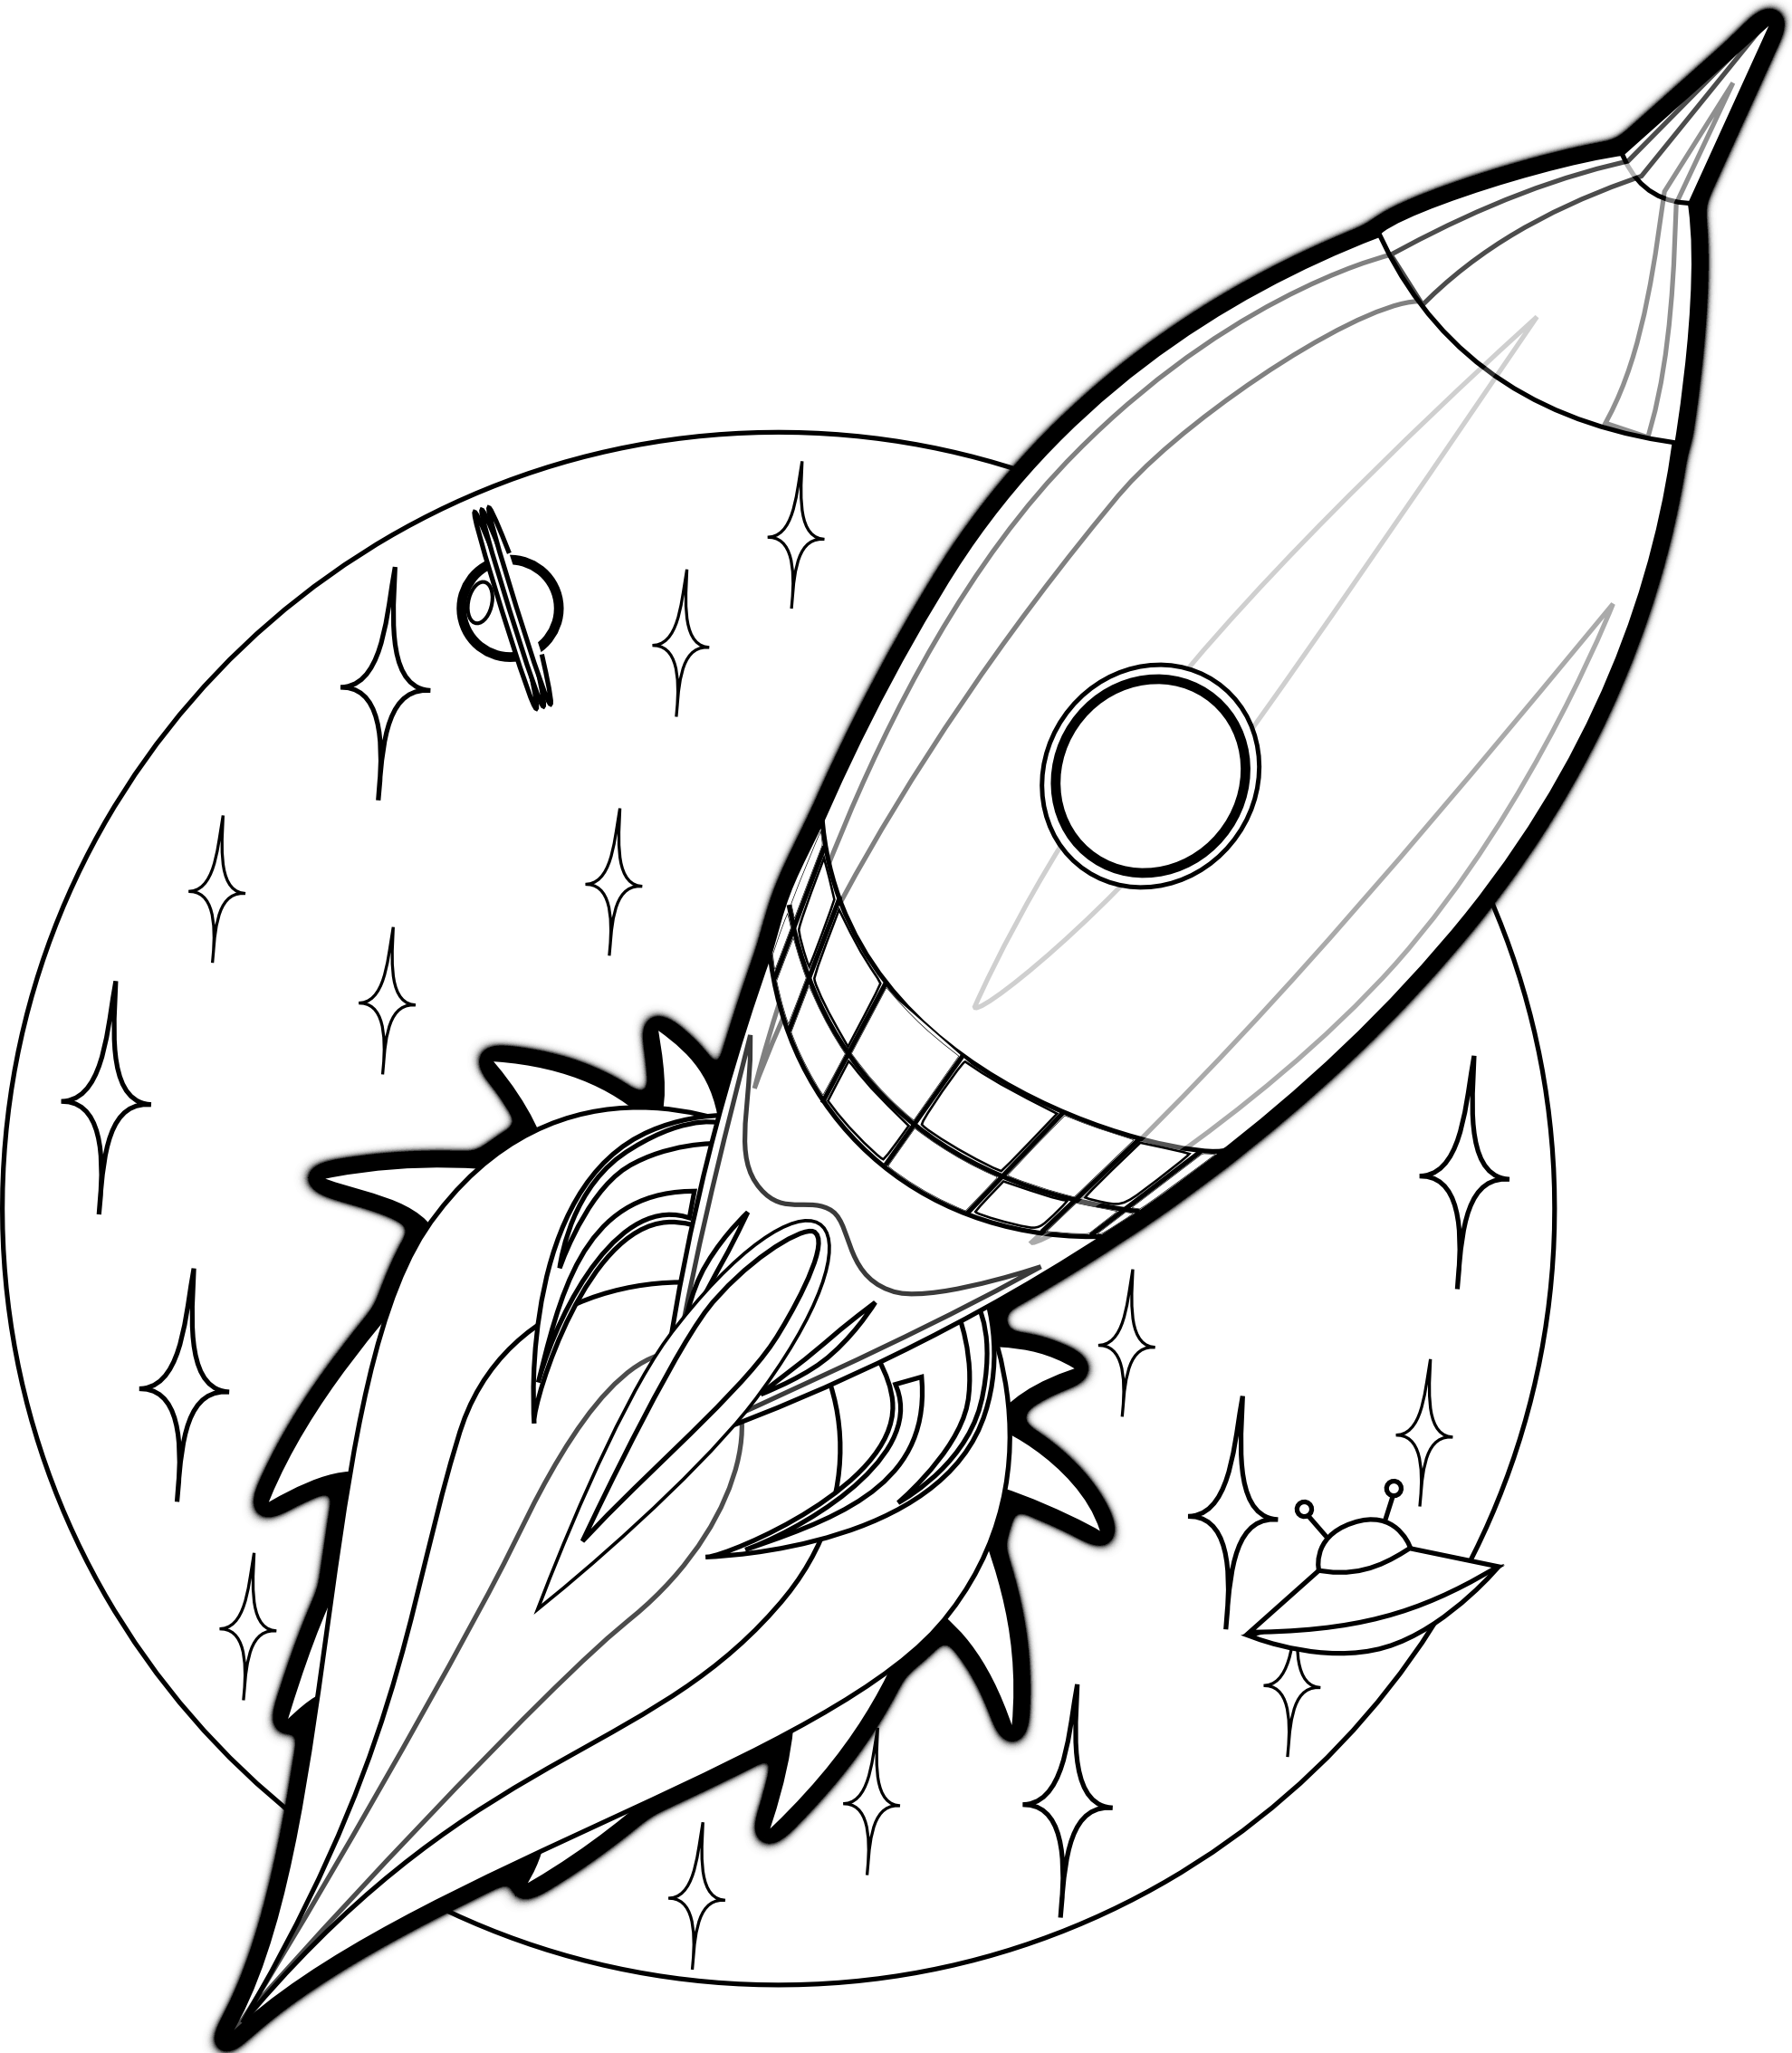 colouring sheet rocket rocket coloring pages to download and print for free rocket colouring sheet